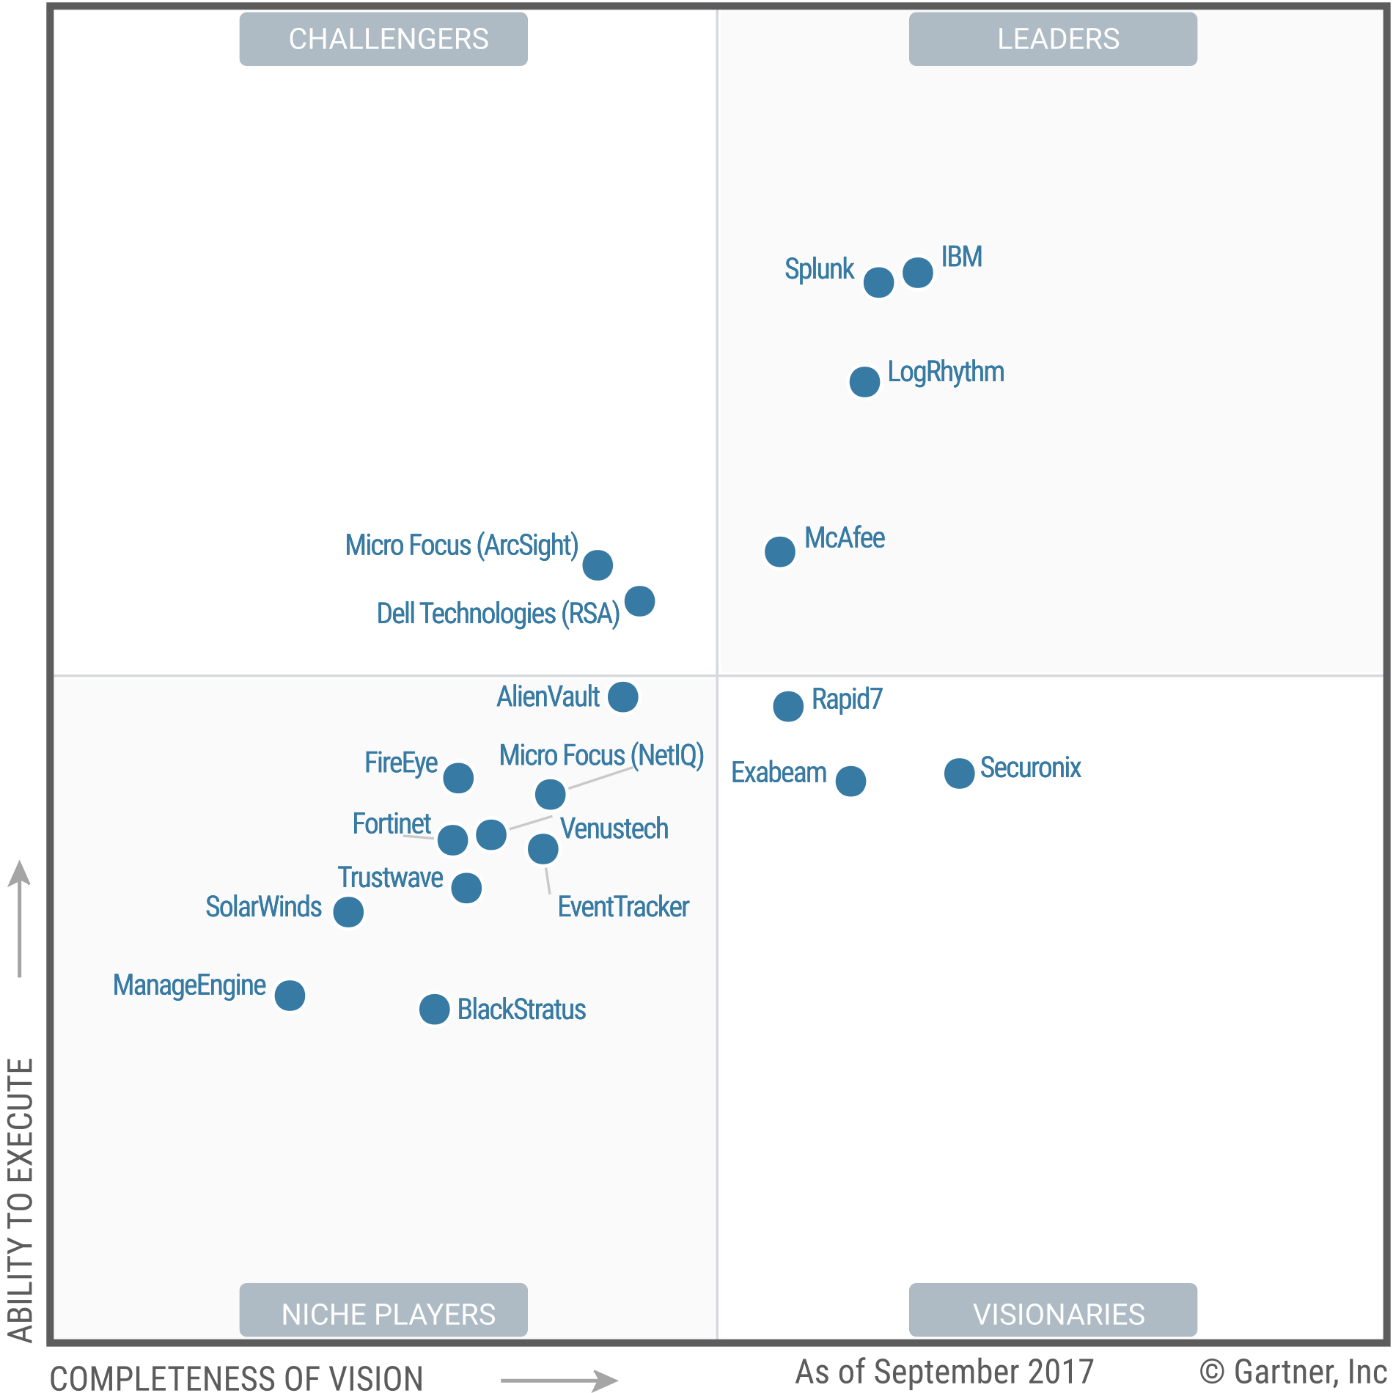 Magic Quadrant for Security Information and Event Management 2017 (G00315428)